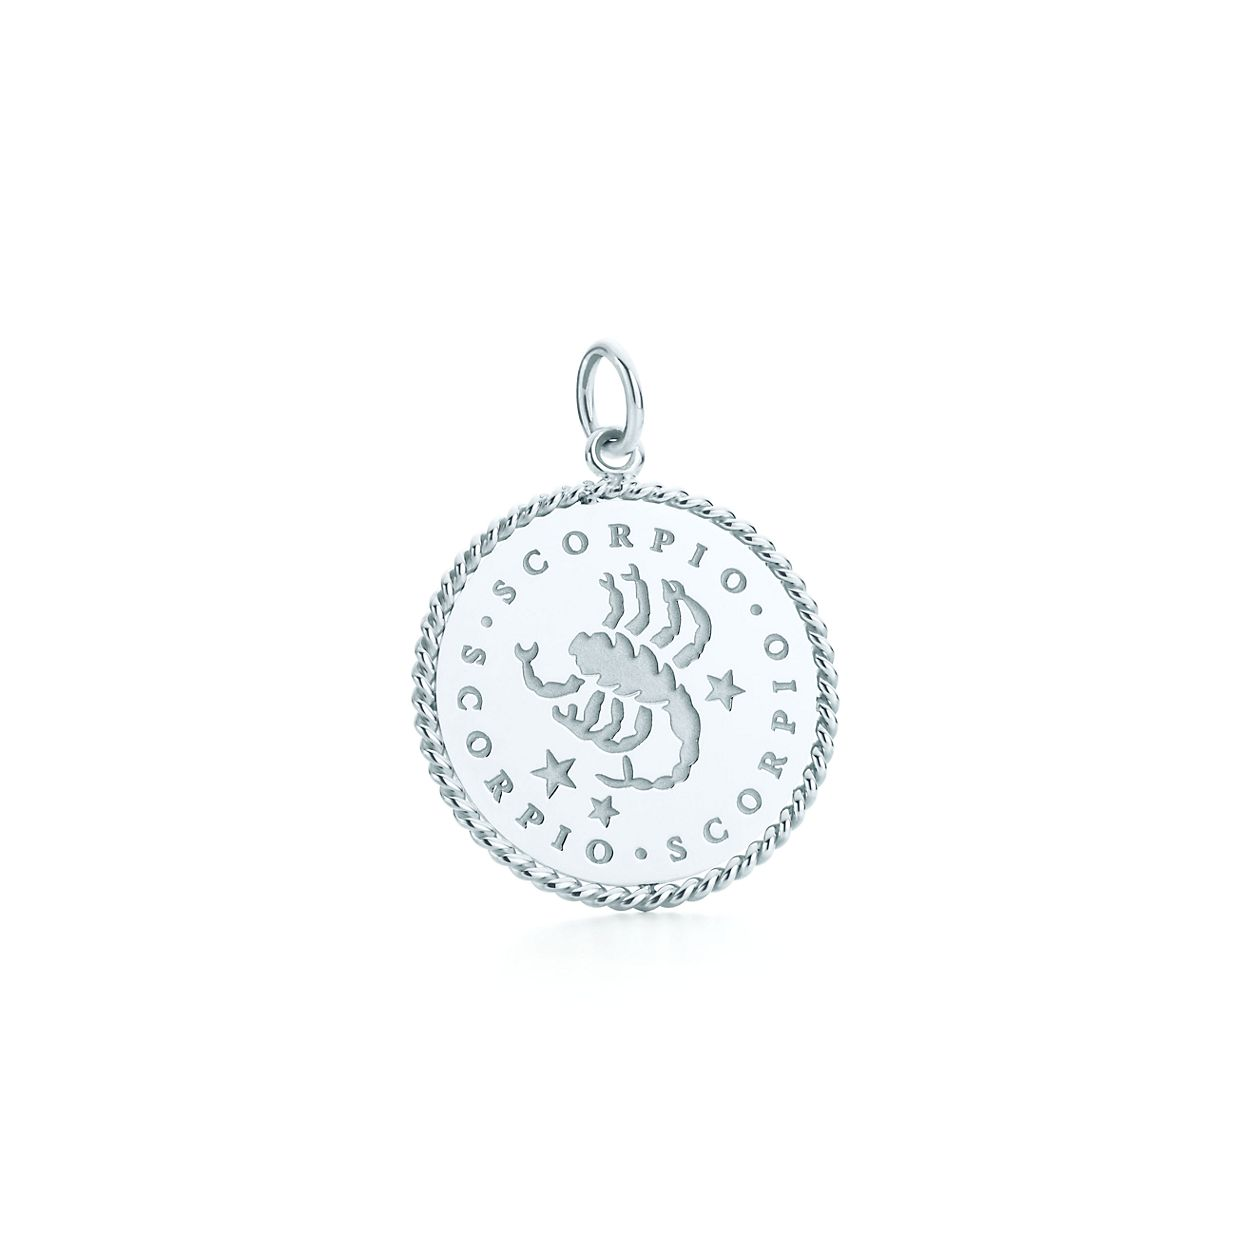 Scorpio zodiac charm in sterling silver tiffany co scorpio zodiac charm scorpio zodiac charm aloadofball Images